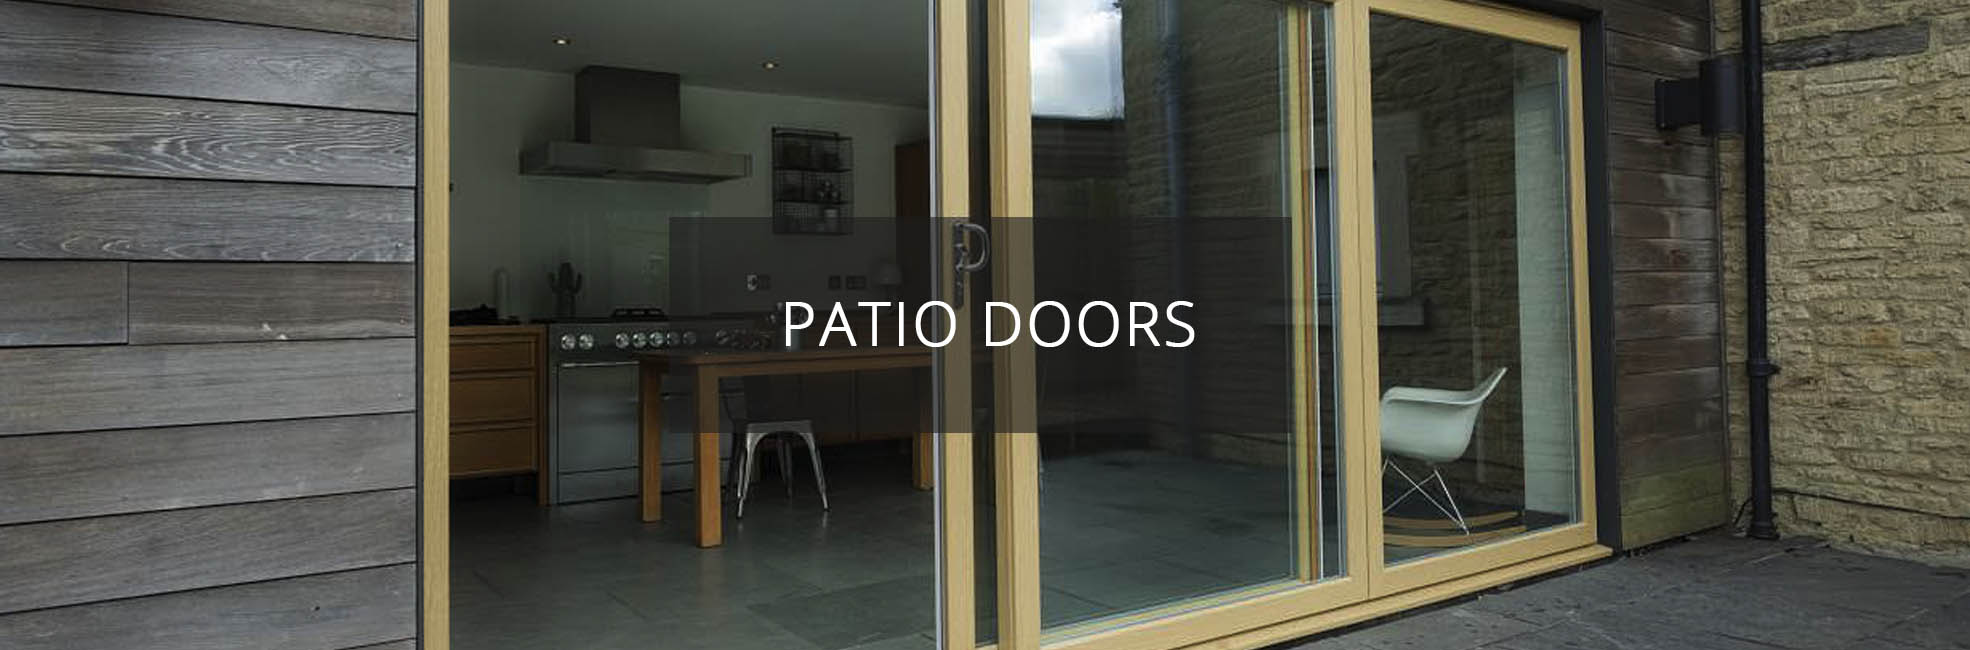 Patio Doors Northampton